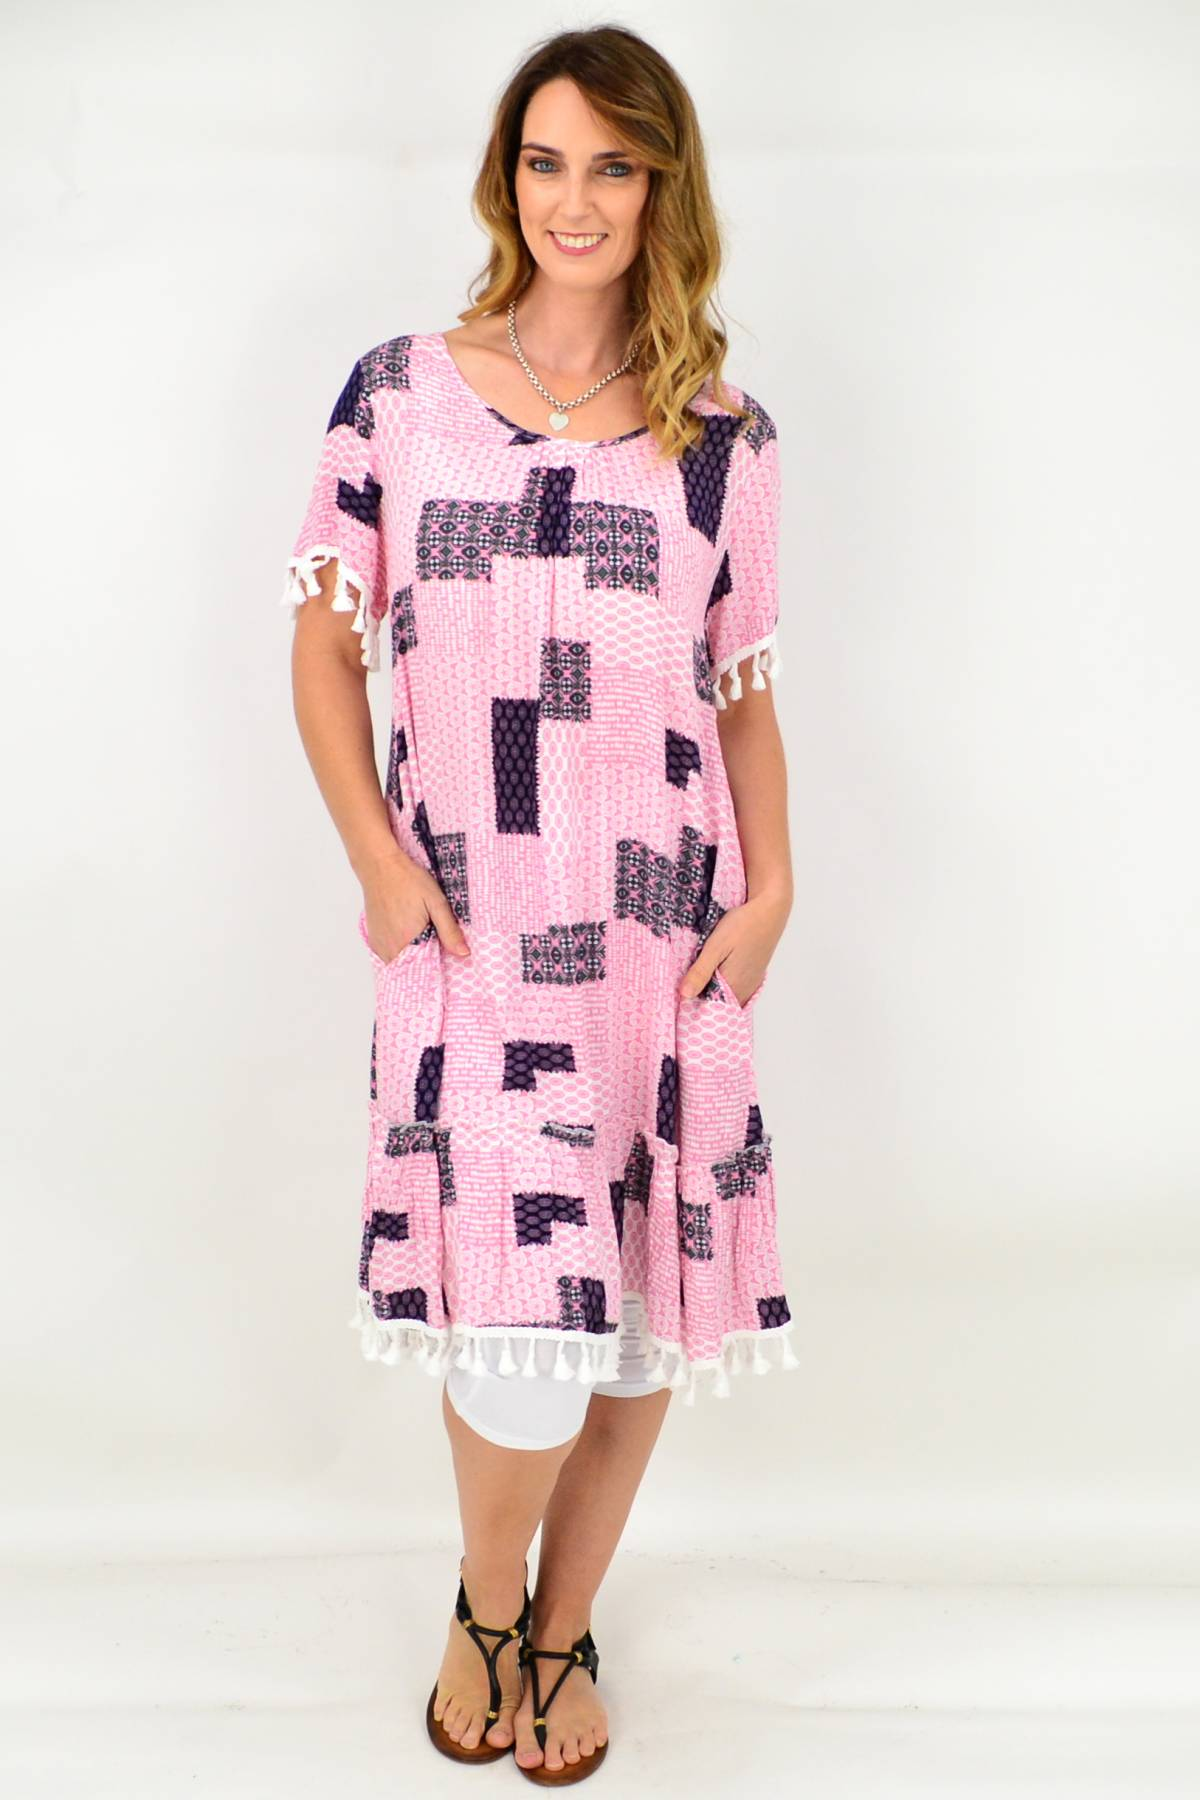 Pink Dress by CKM available at www.ilovetunics.com